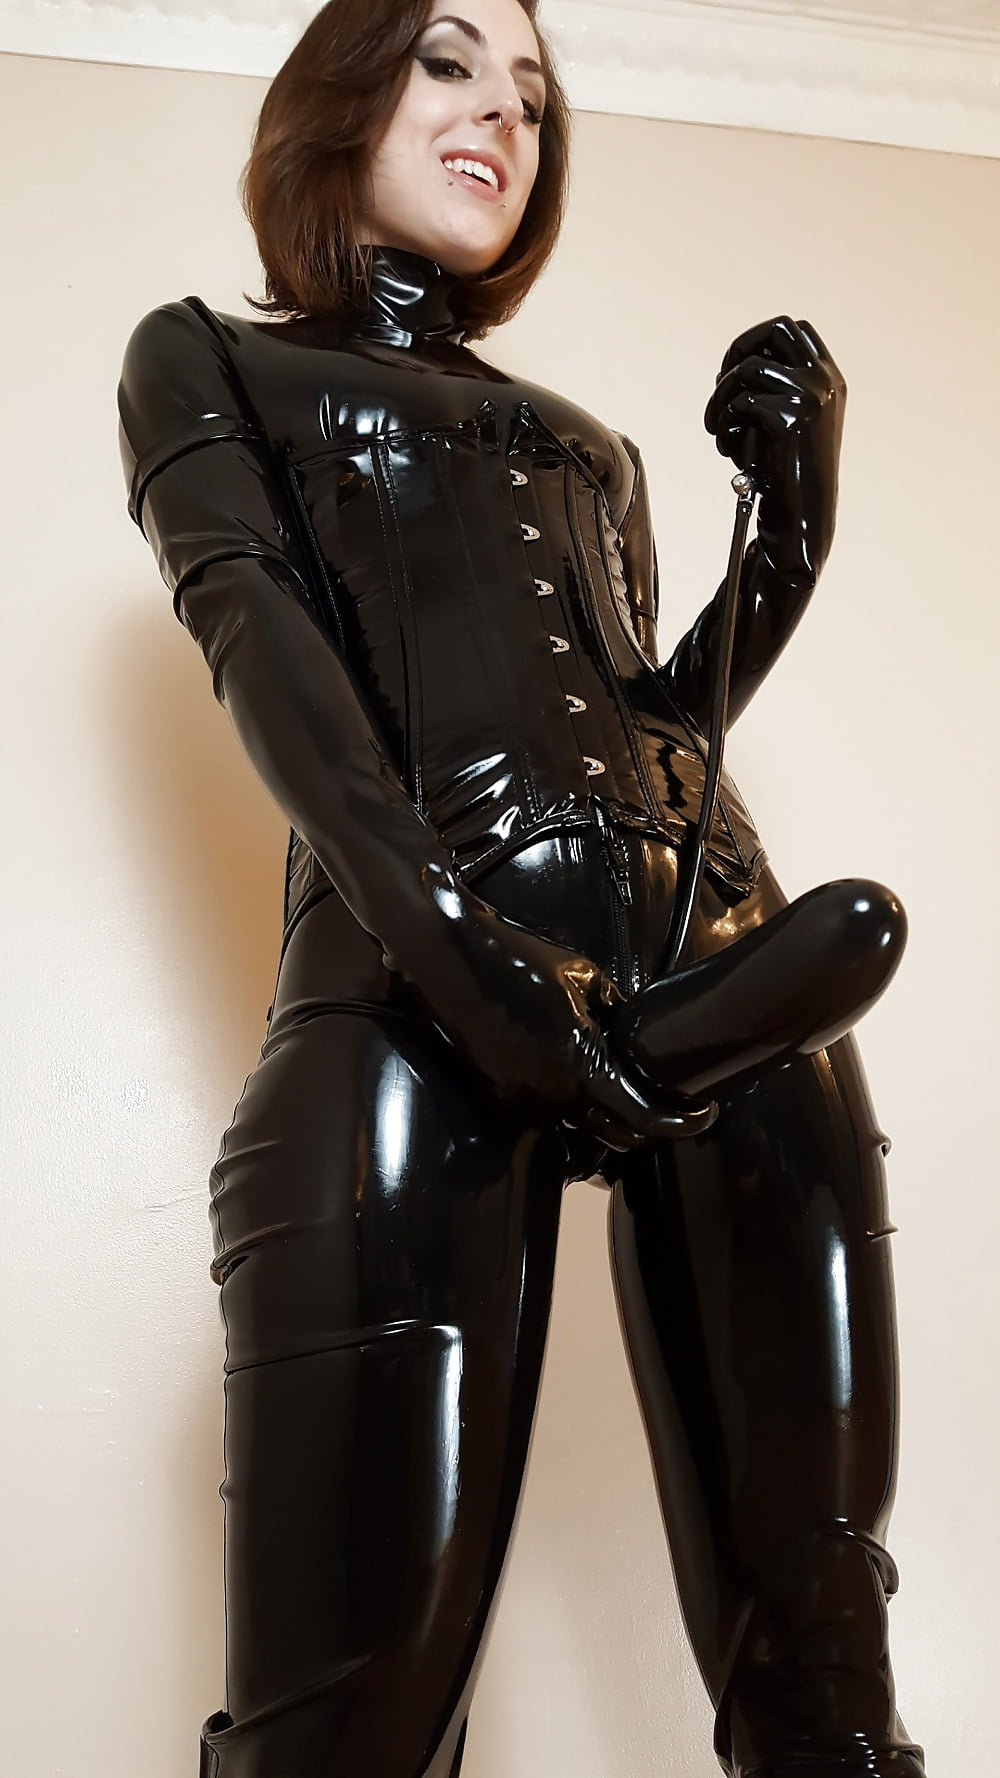 drinking-picture-latex-sexy-strapon-black-and